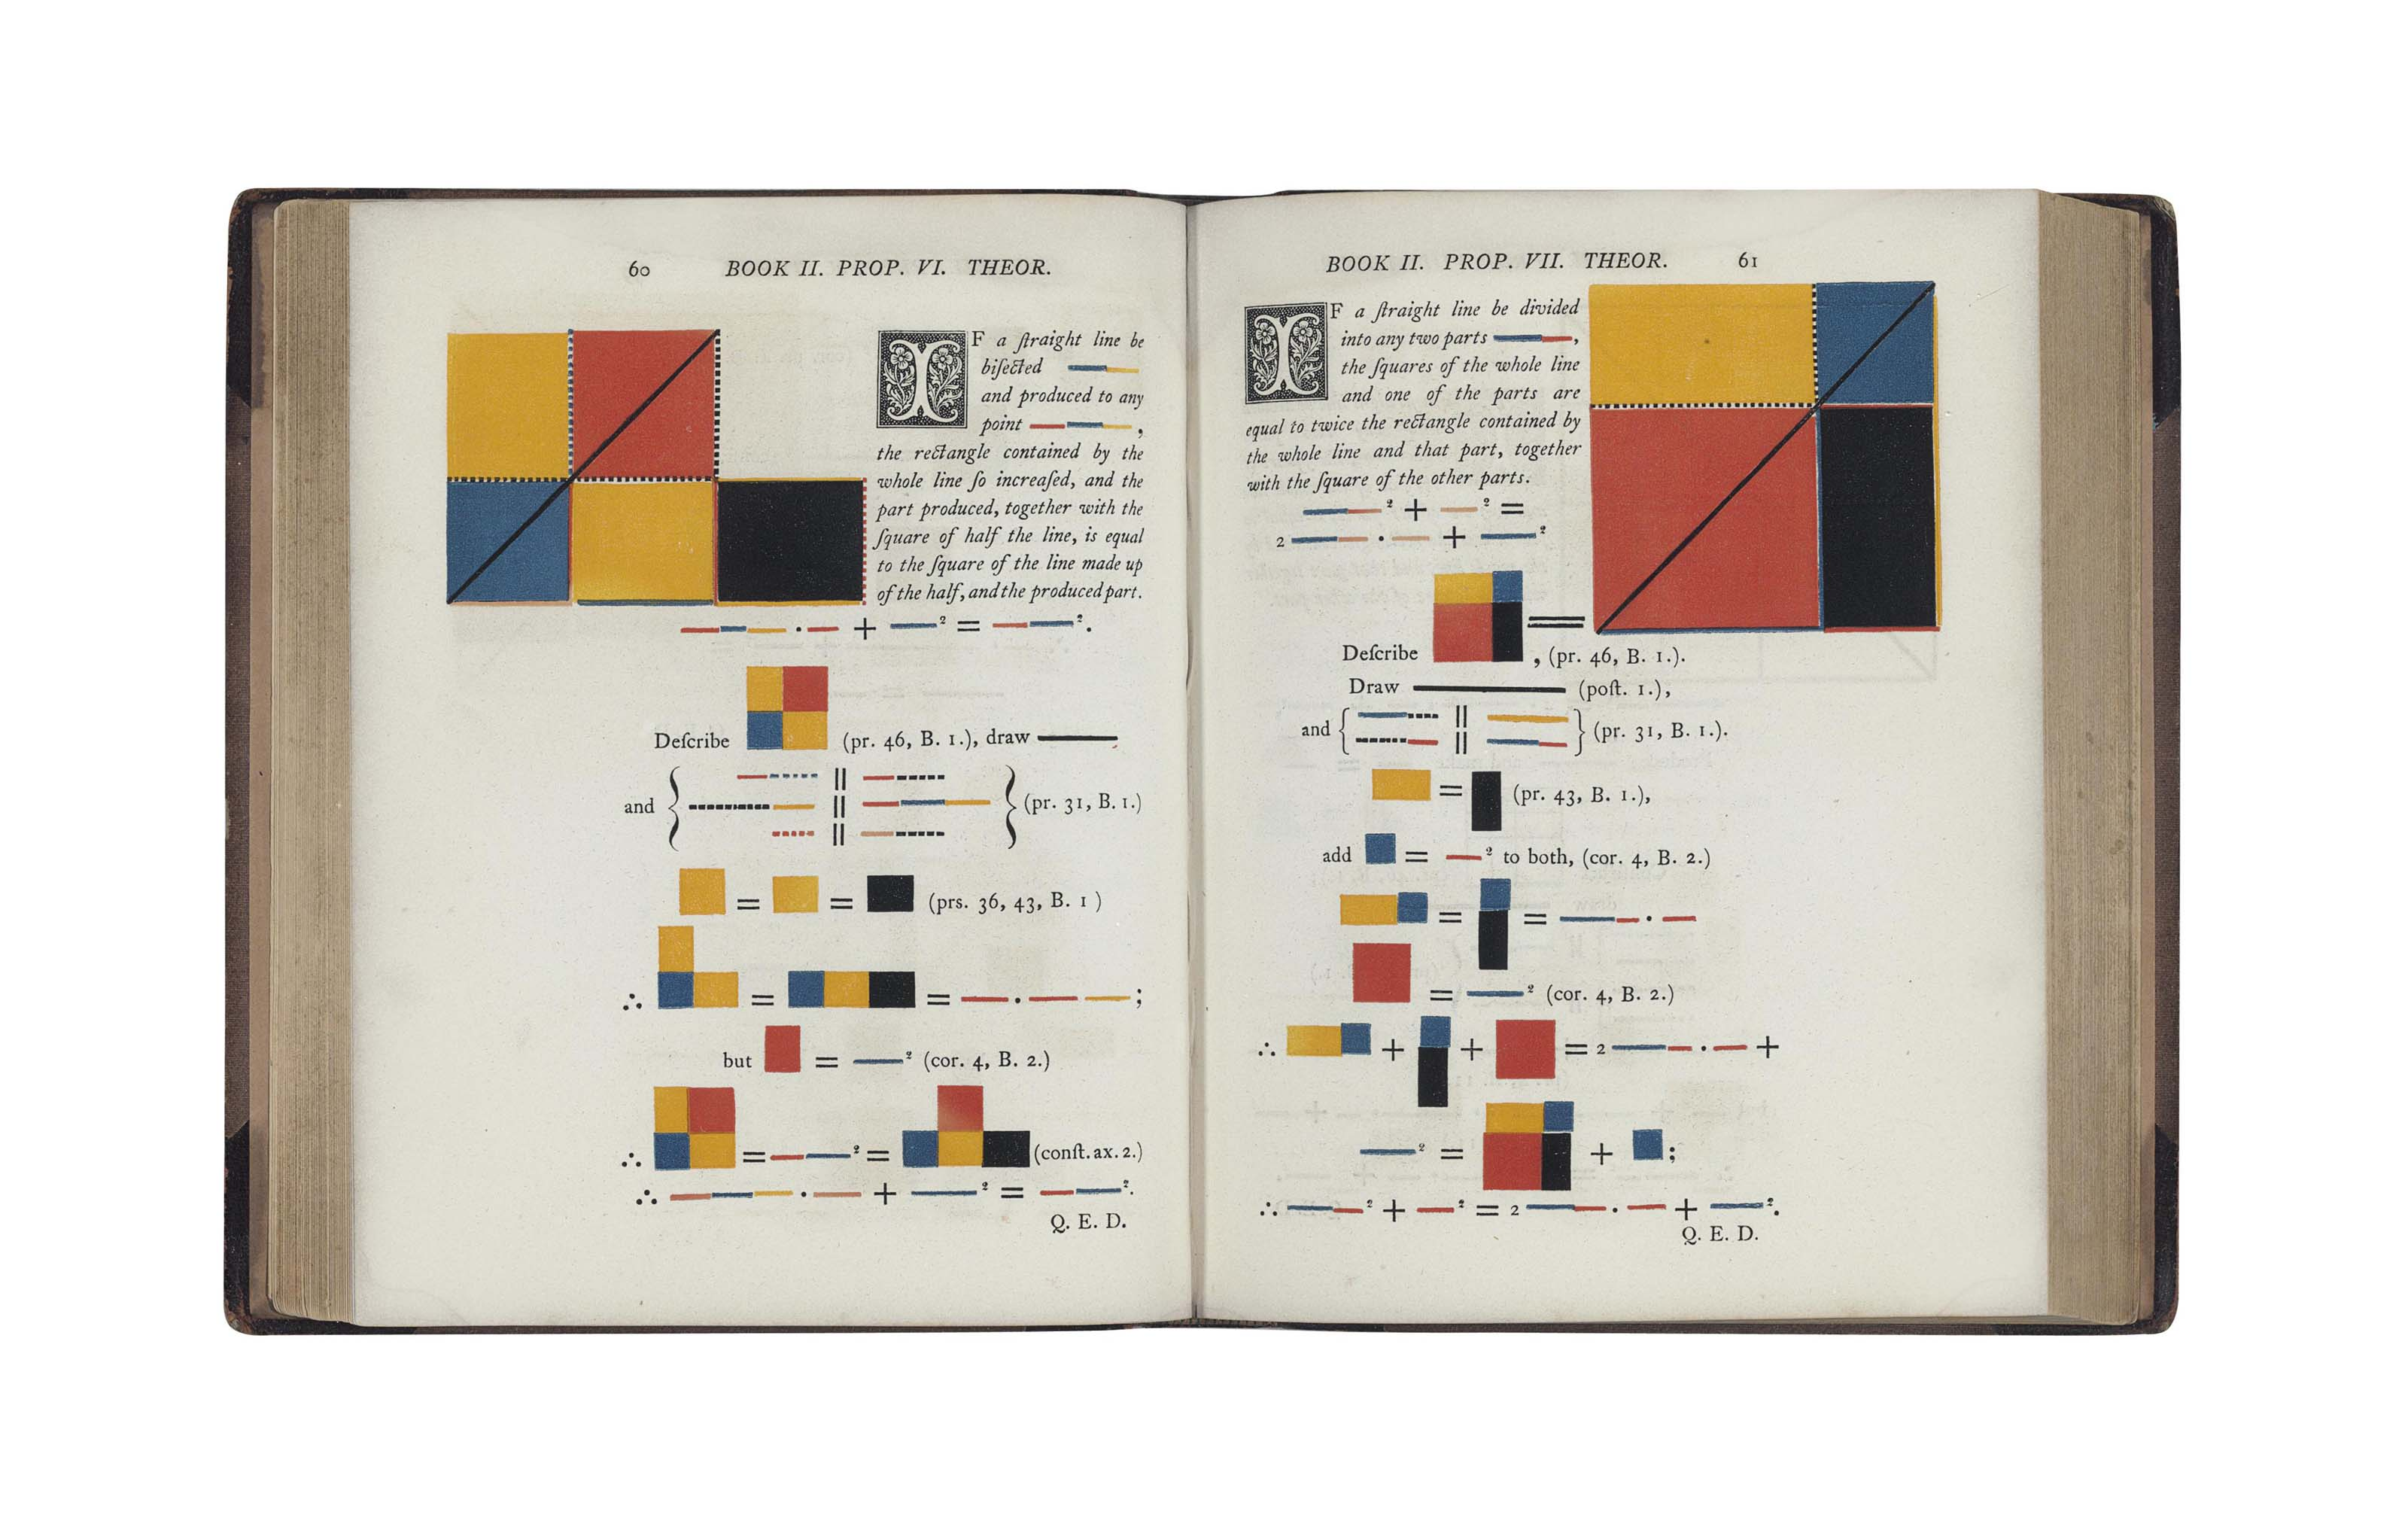 EUCLID -- BYRNE, Oliver (ca 1810 - ca 1880). The First Six Books of the Elements of Euclid in which coloured diagrams and symbols are used instead of letters for the greater ease of learners. London: Charles Whittingham at the Chiswick Press for William Pickering, 1847.